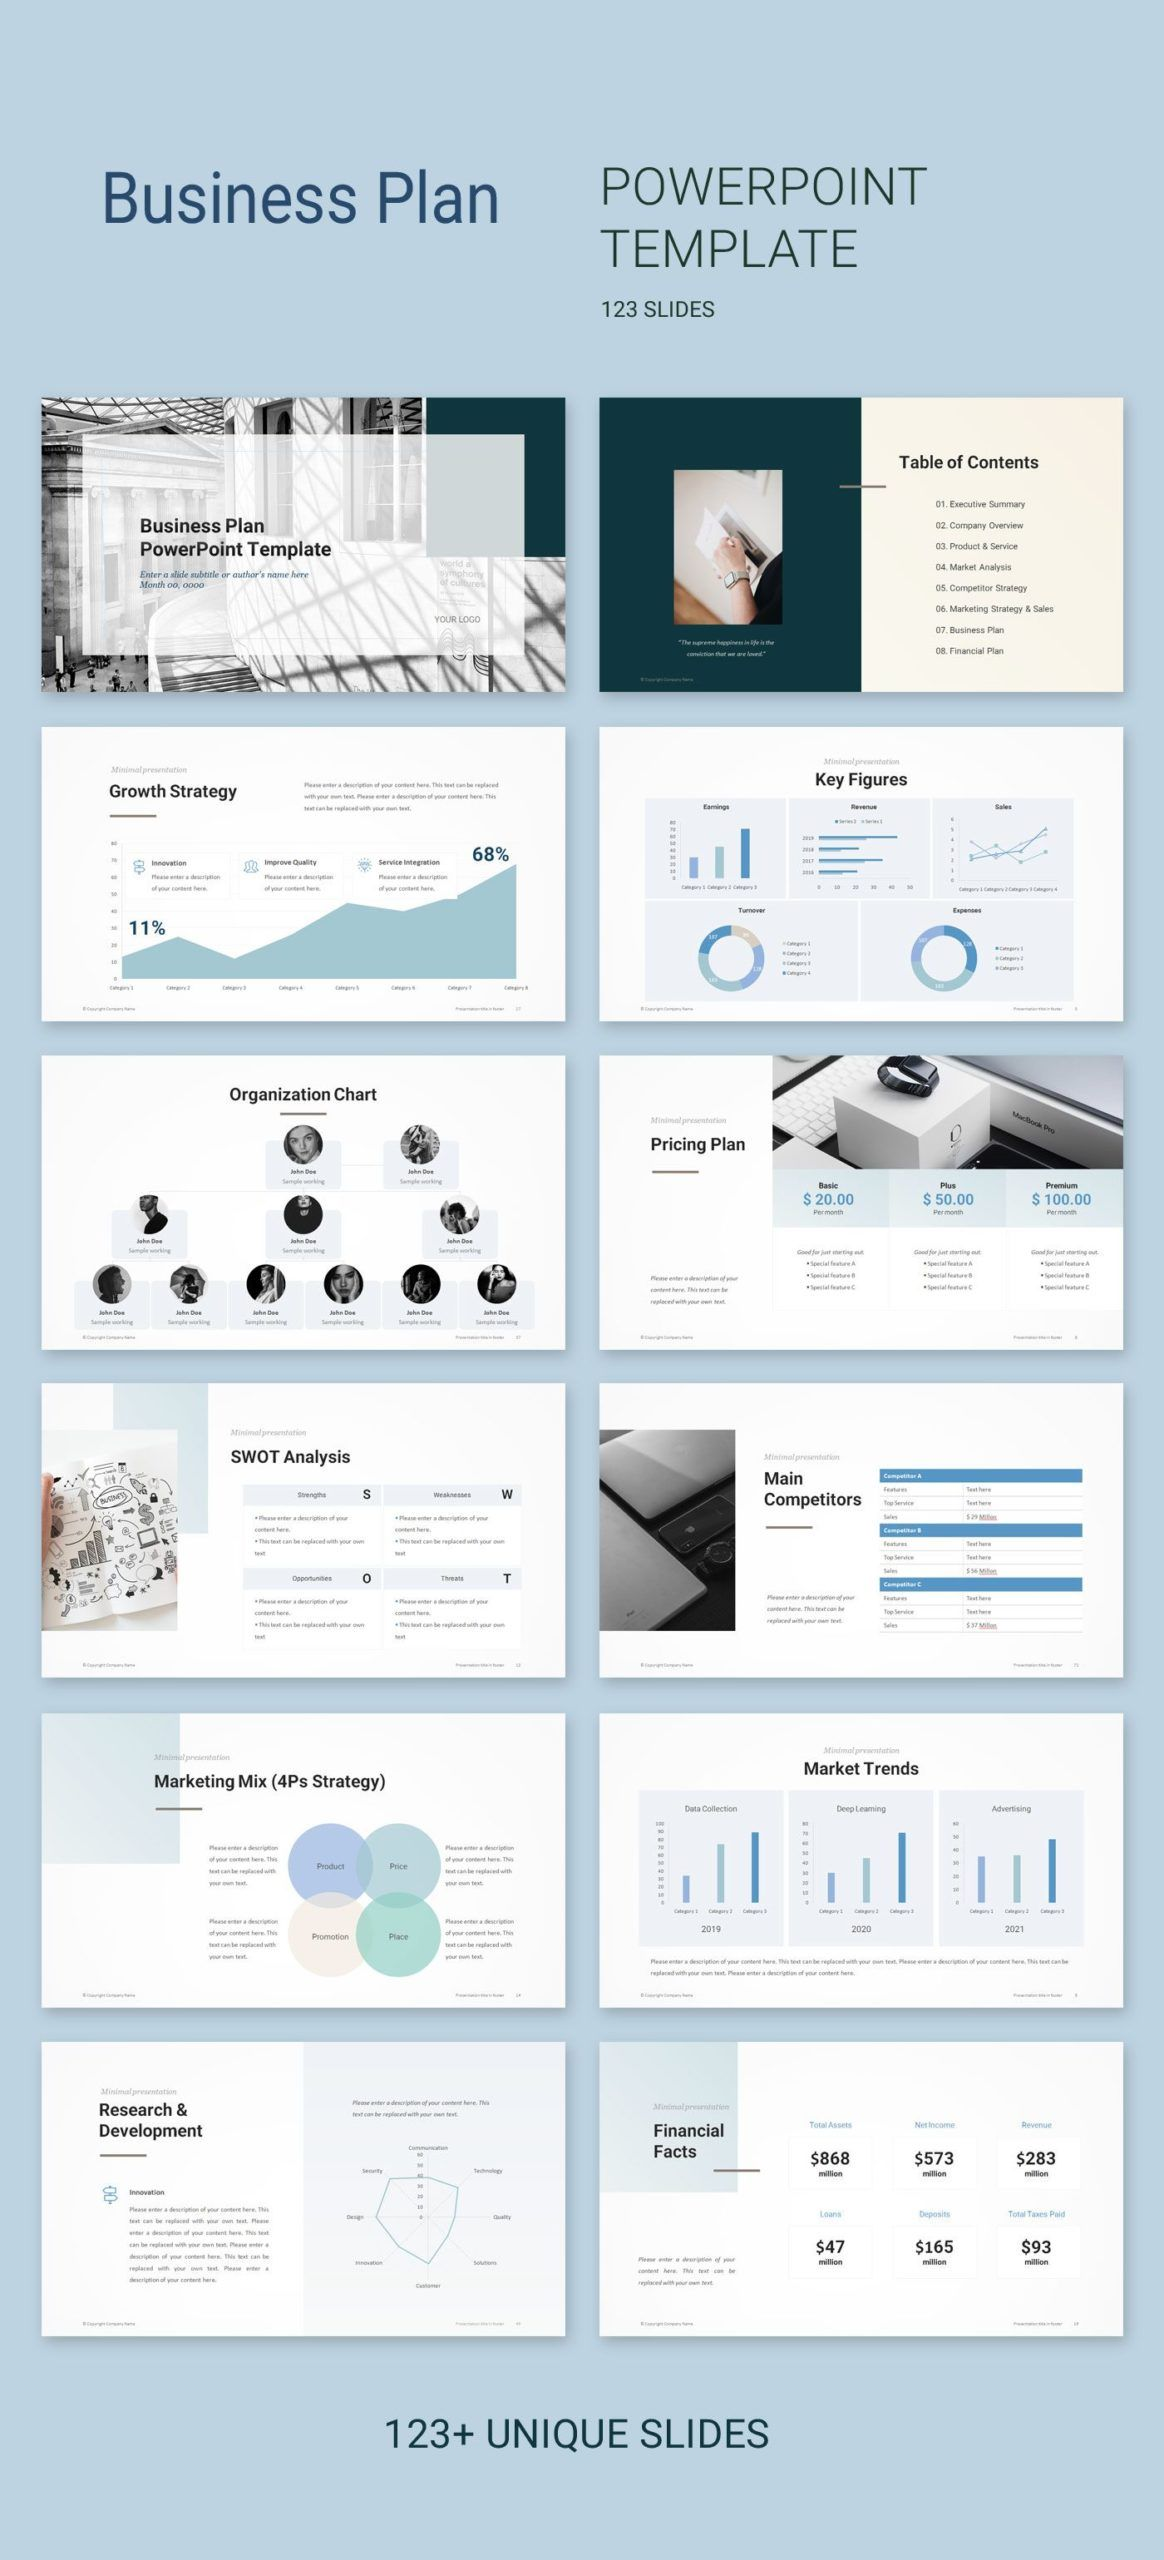 Business Plan PowerPoint Template 2019, Business